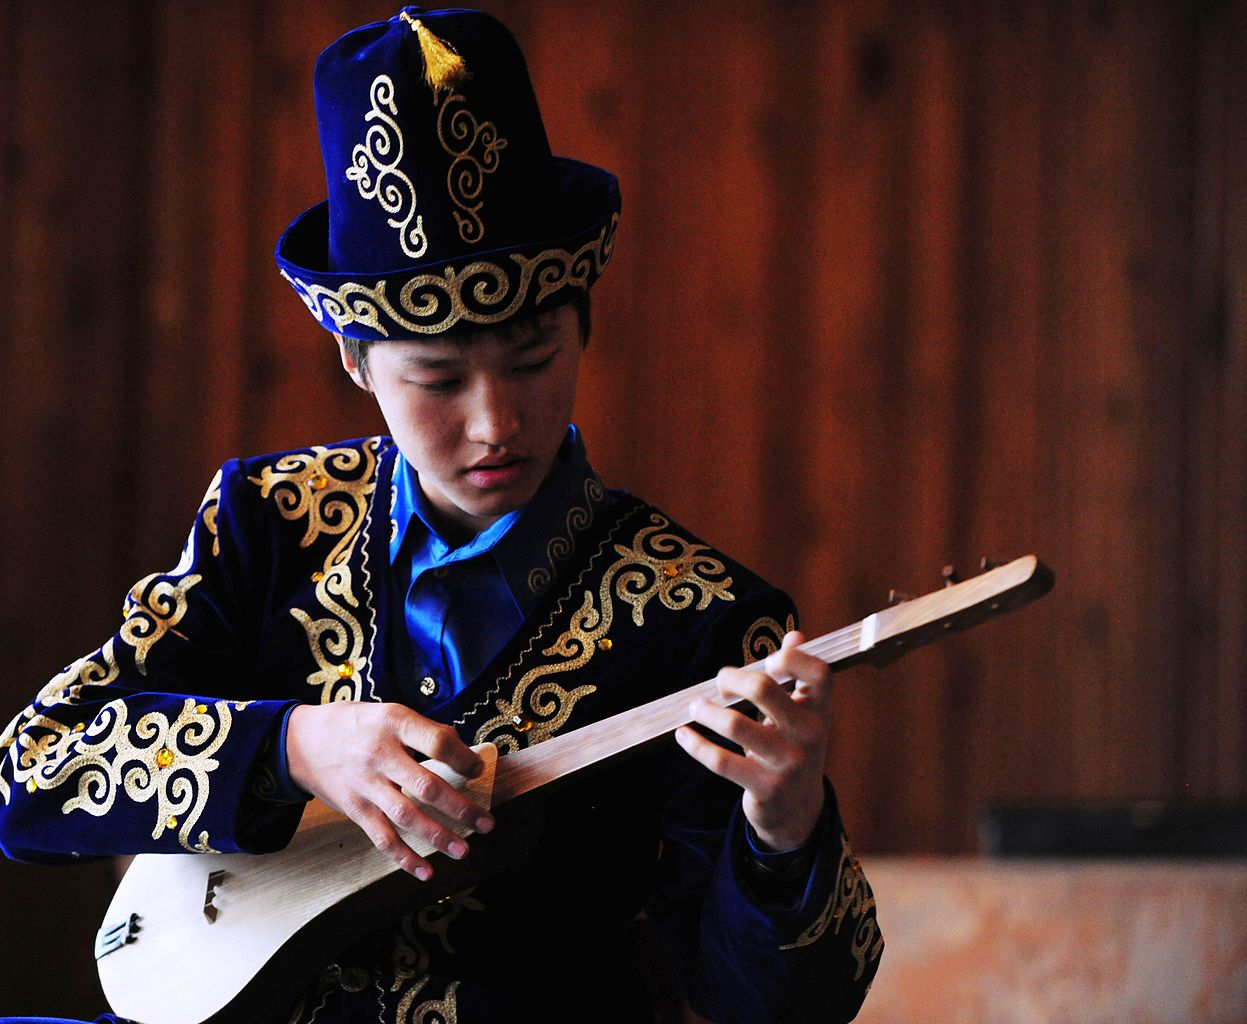 Kyrgyz students plays the Komuz IMPAKTER